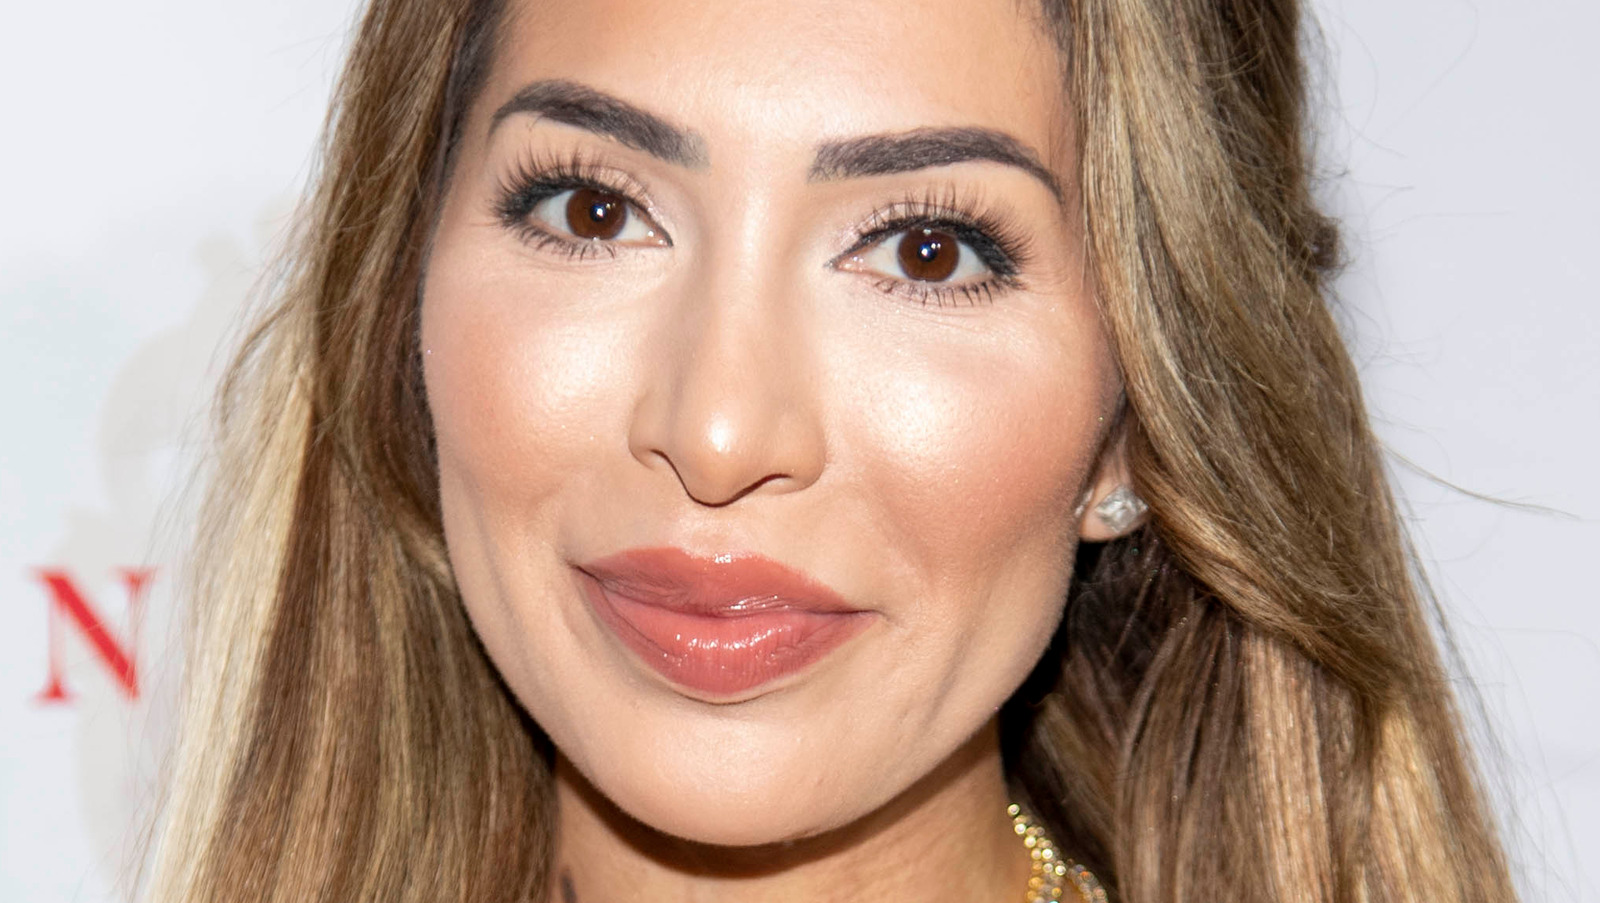 What happened to Farrah Abraham's father?